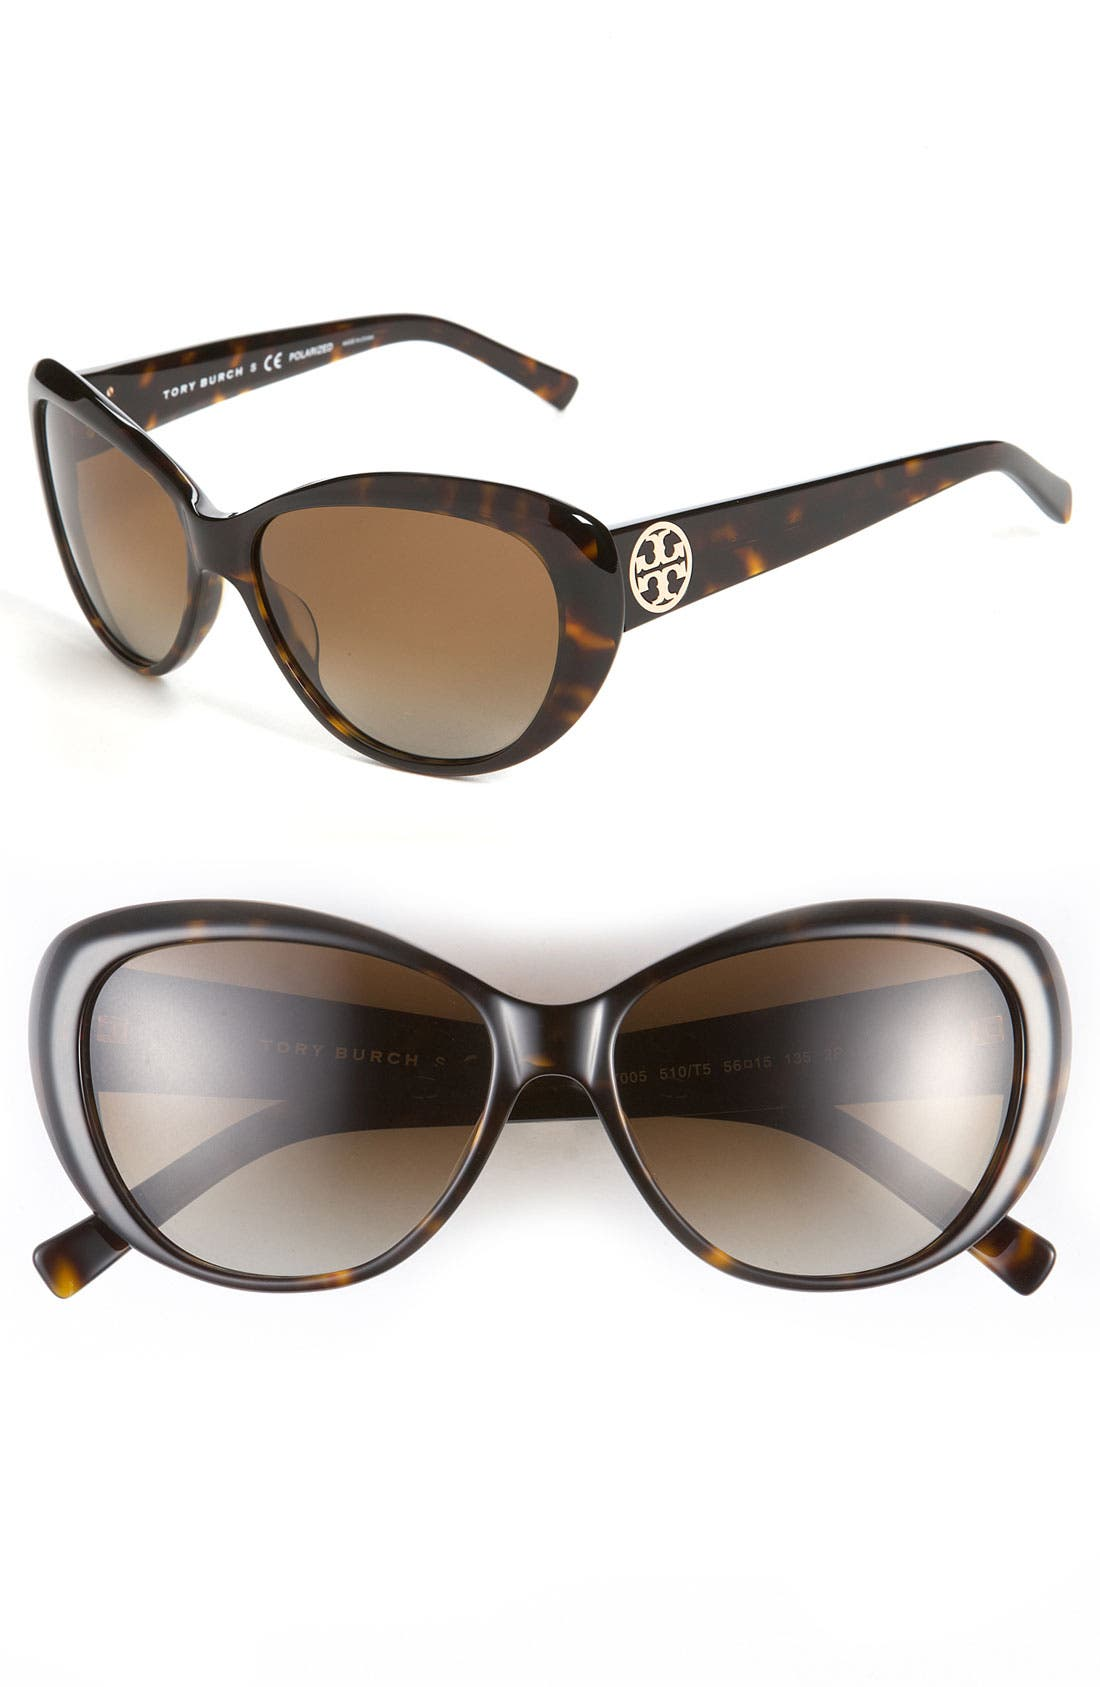 Alternate Image 1 Selected - Tory Burch 56mm Polarized Cat's Eye Sunglasses